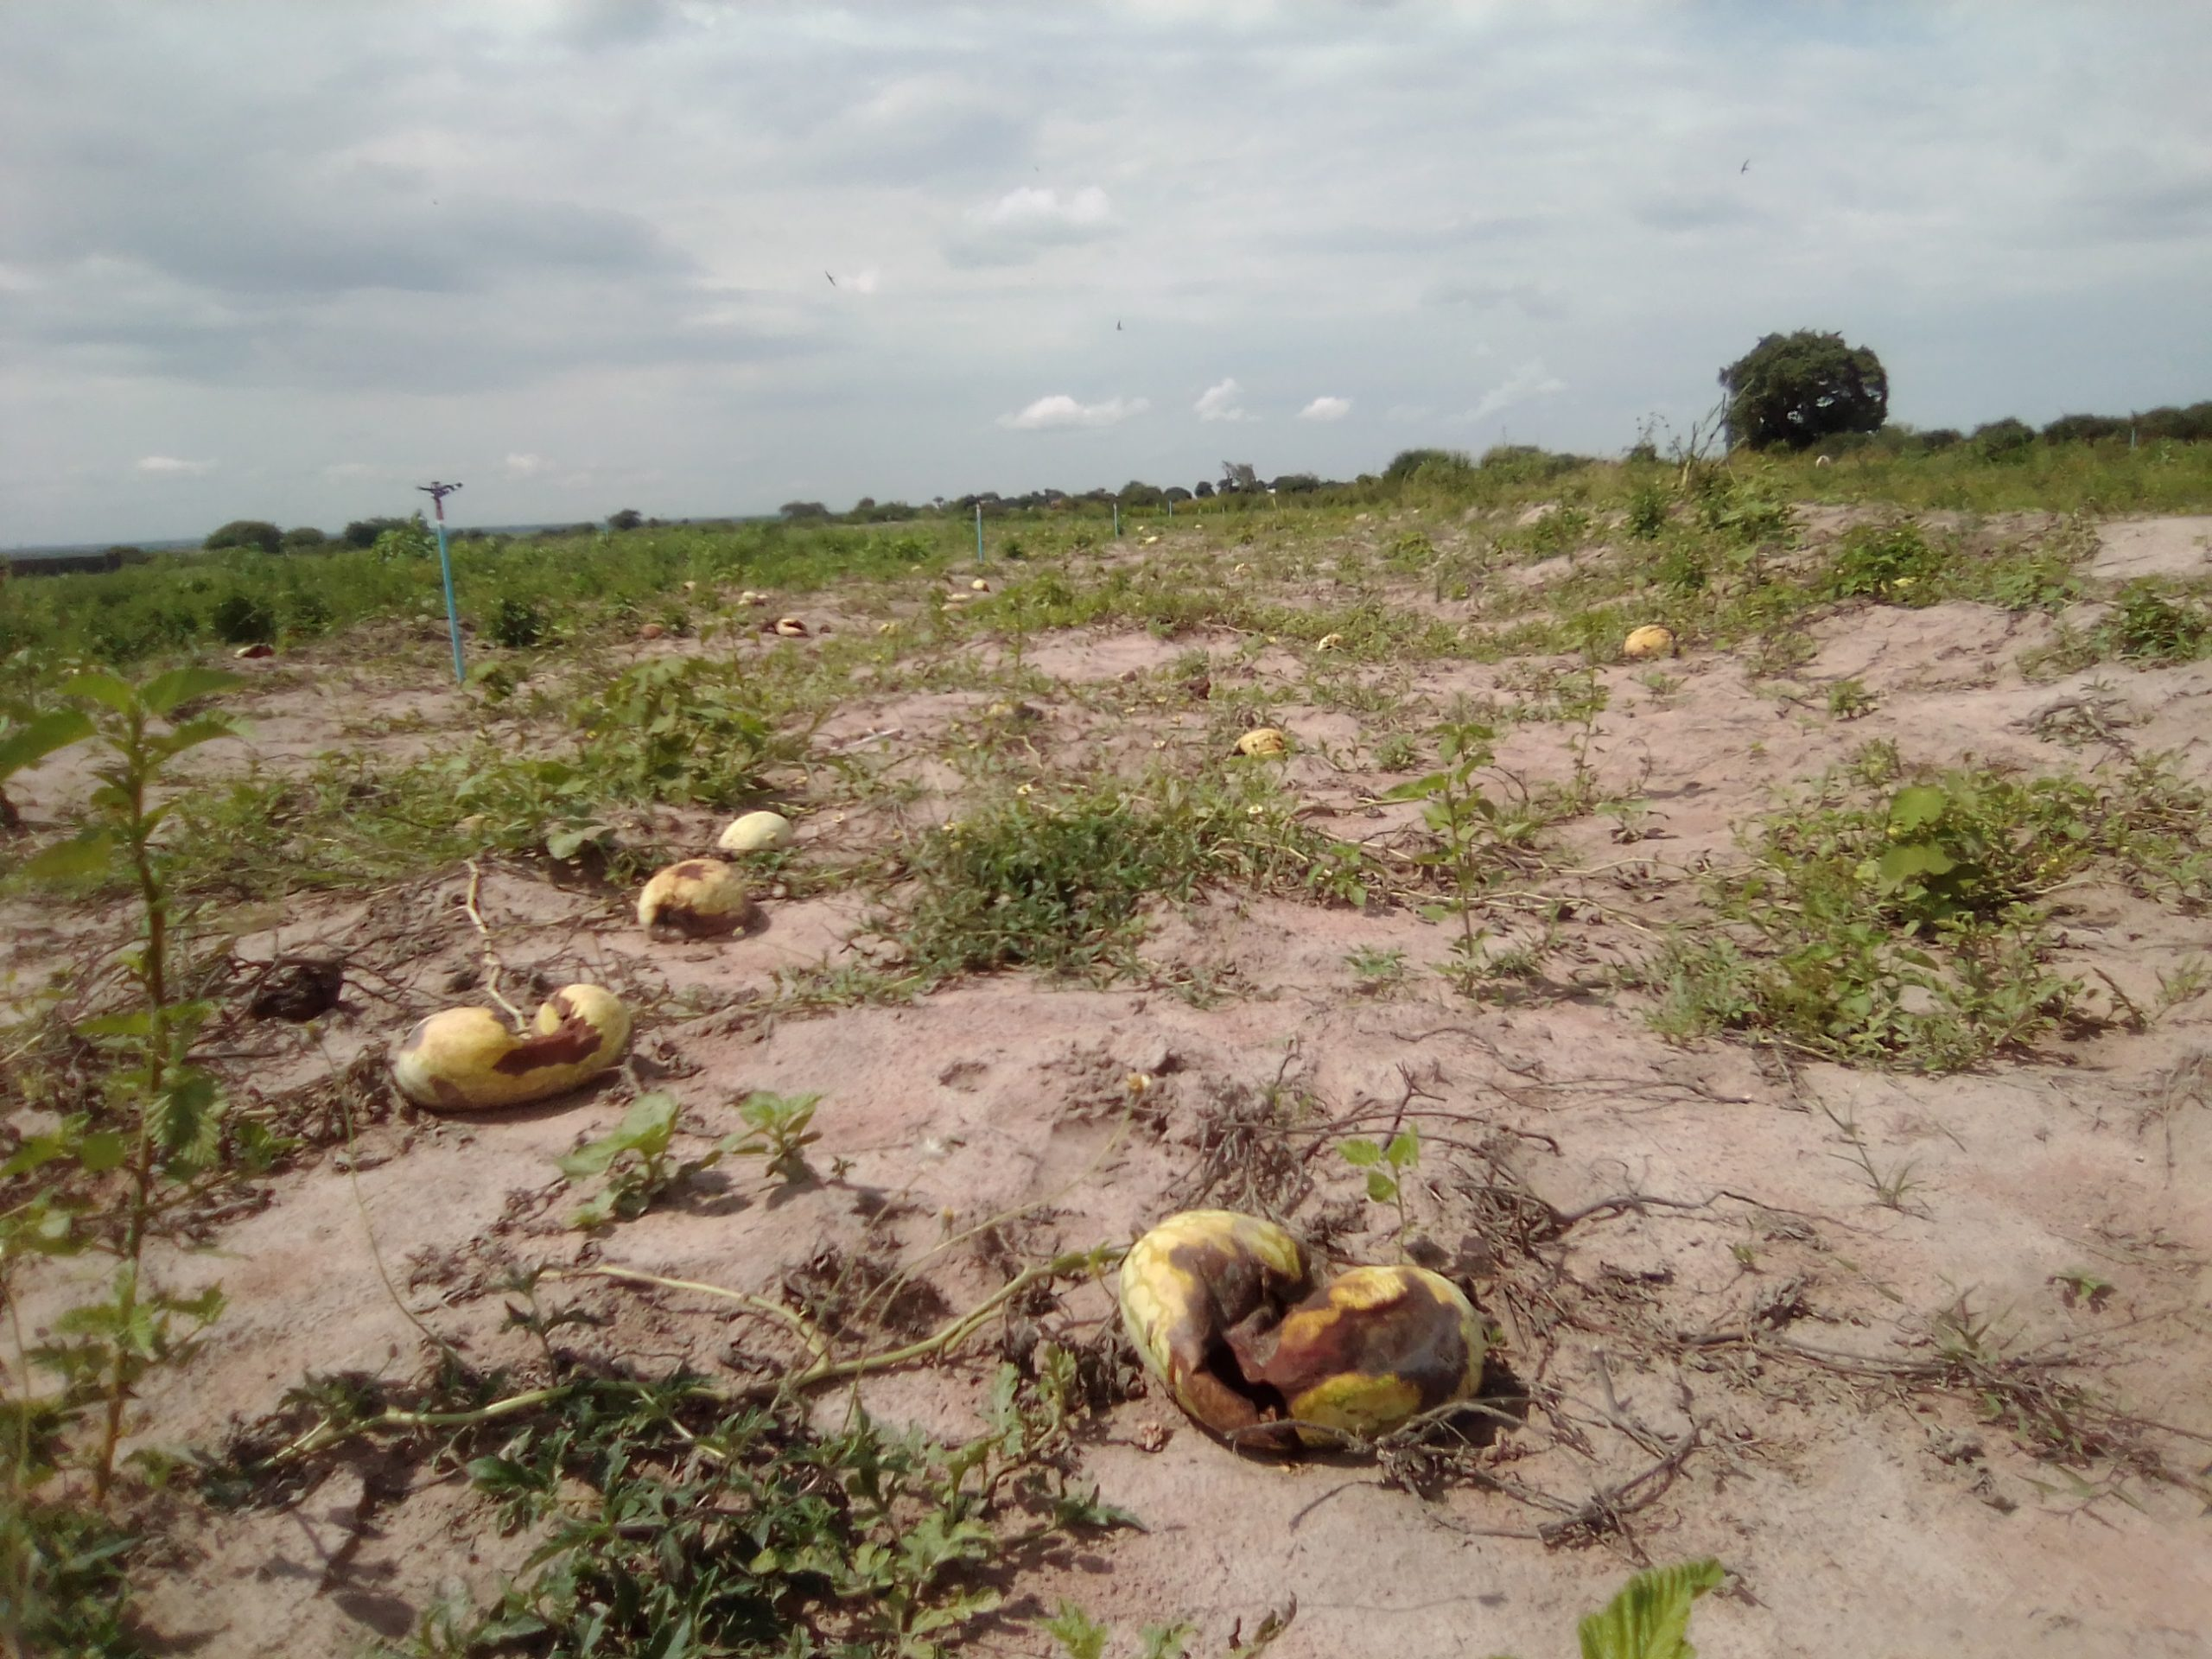 Reaping from Harm; a slow extinction of Uganda's wetlands: Locals hit by changing weather patterns as swamps along Lake Kyoga dry up